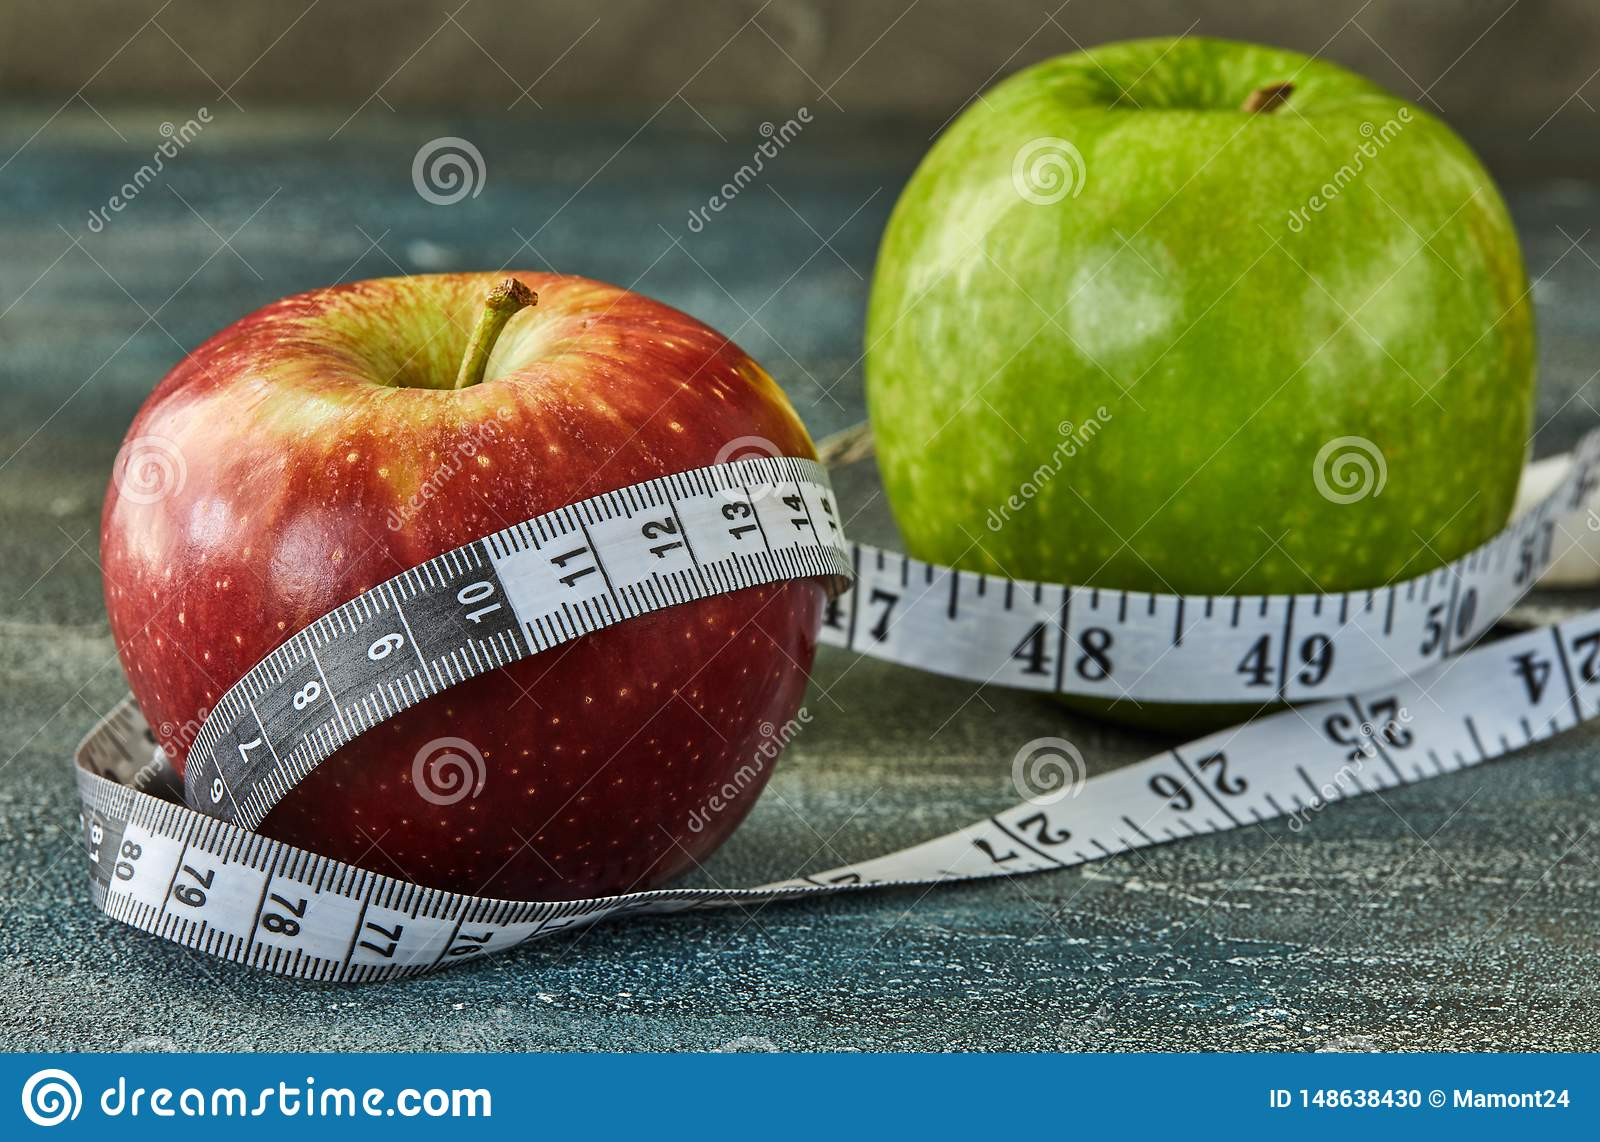 Fruits and meter on a blue with divorces background